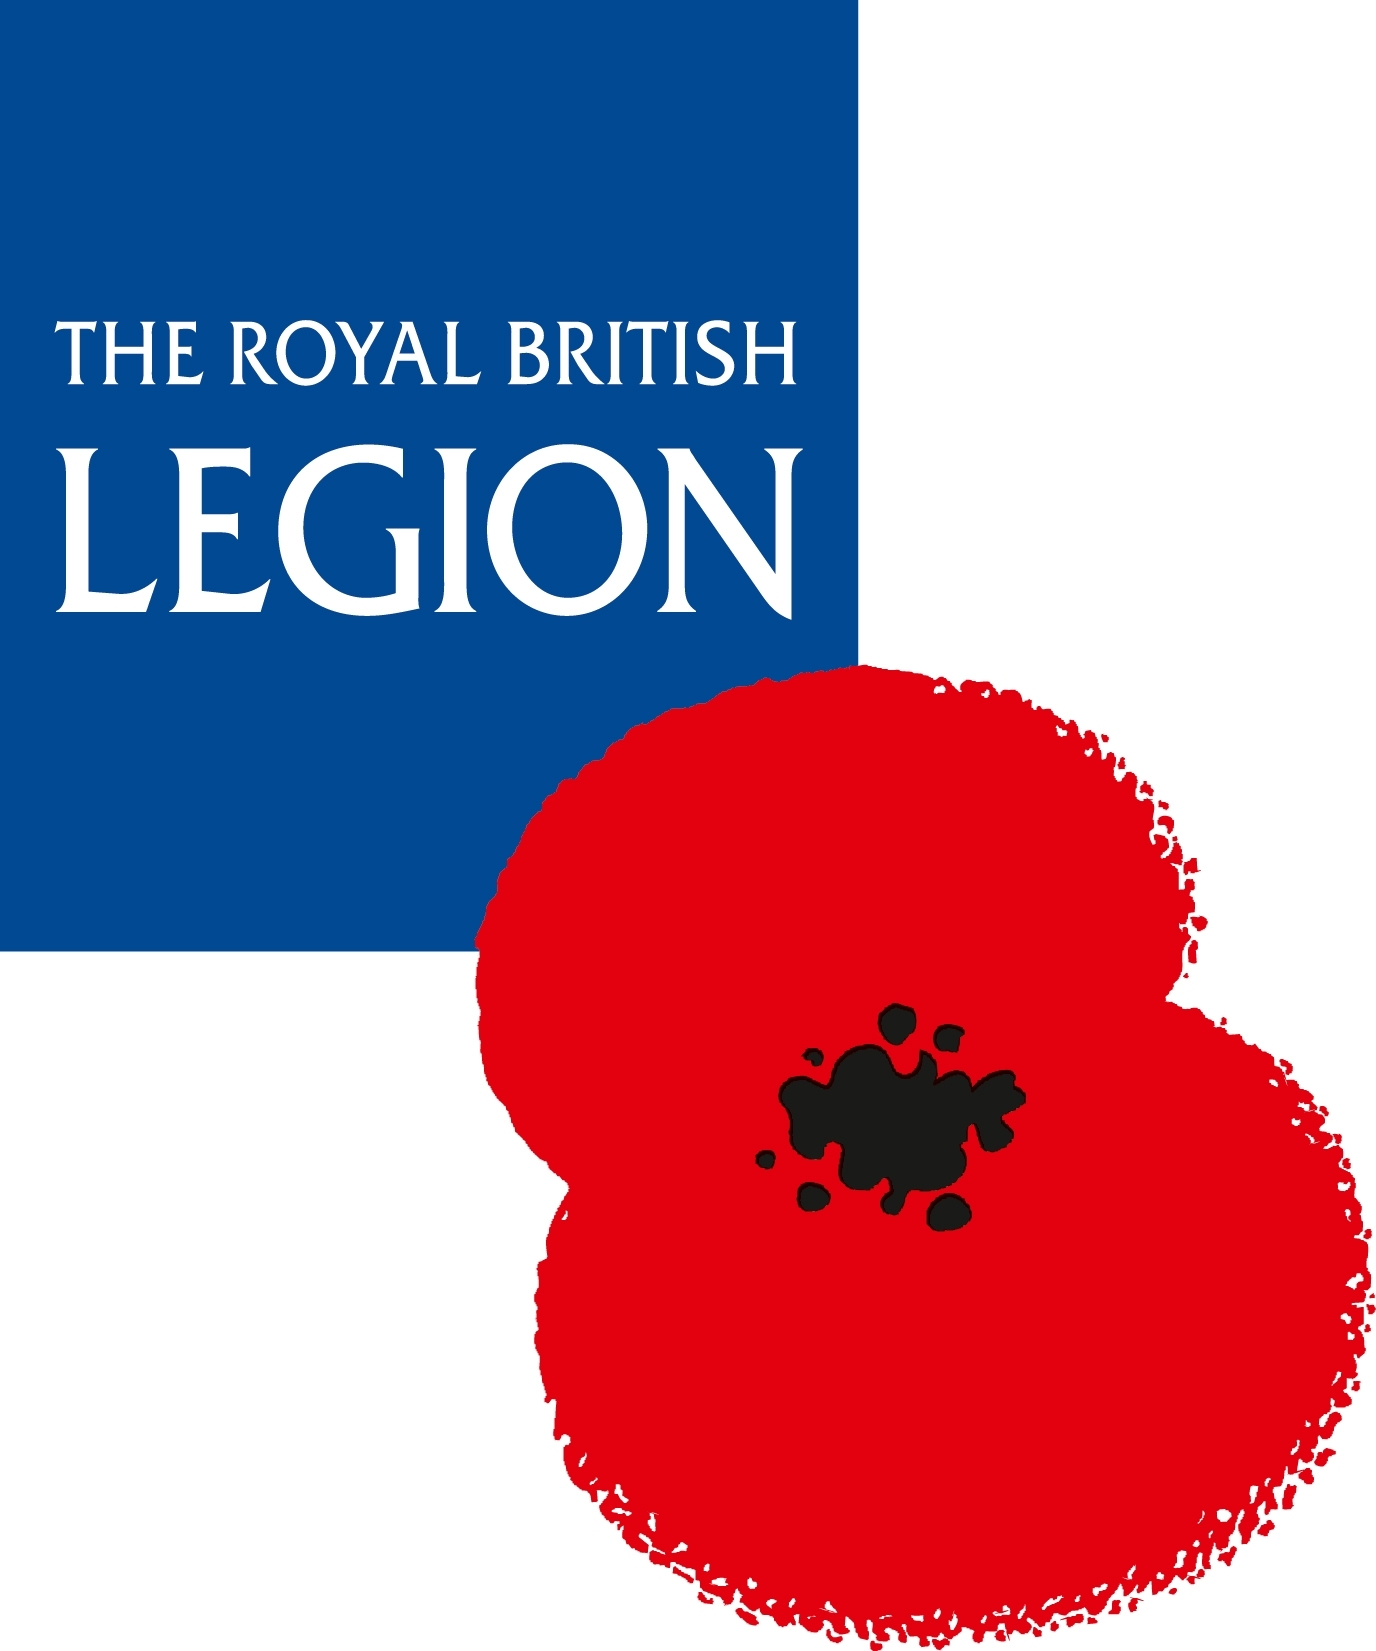 Football club raises over £750 for The Royal British Legion